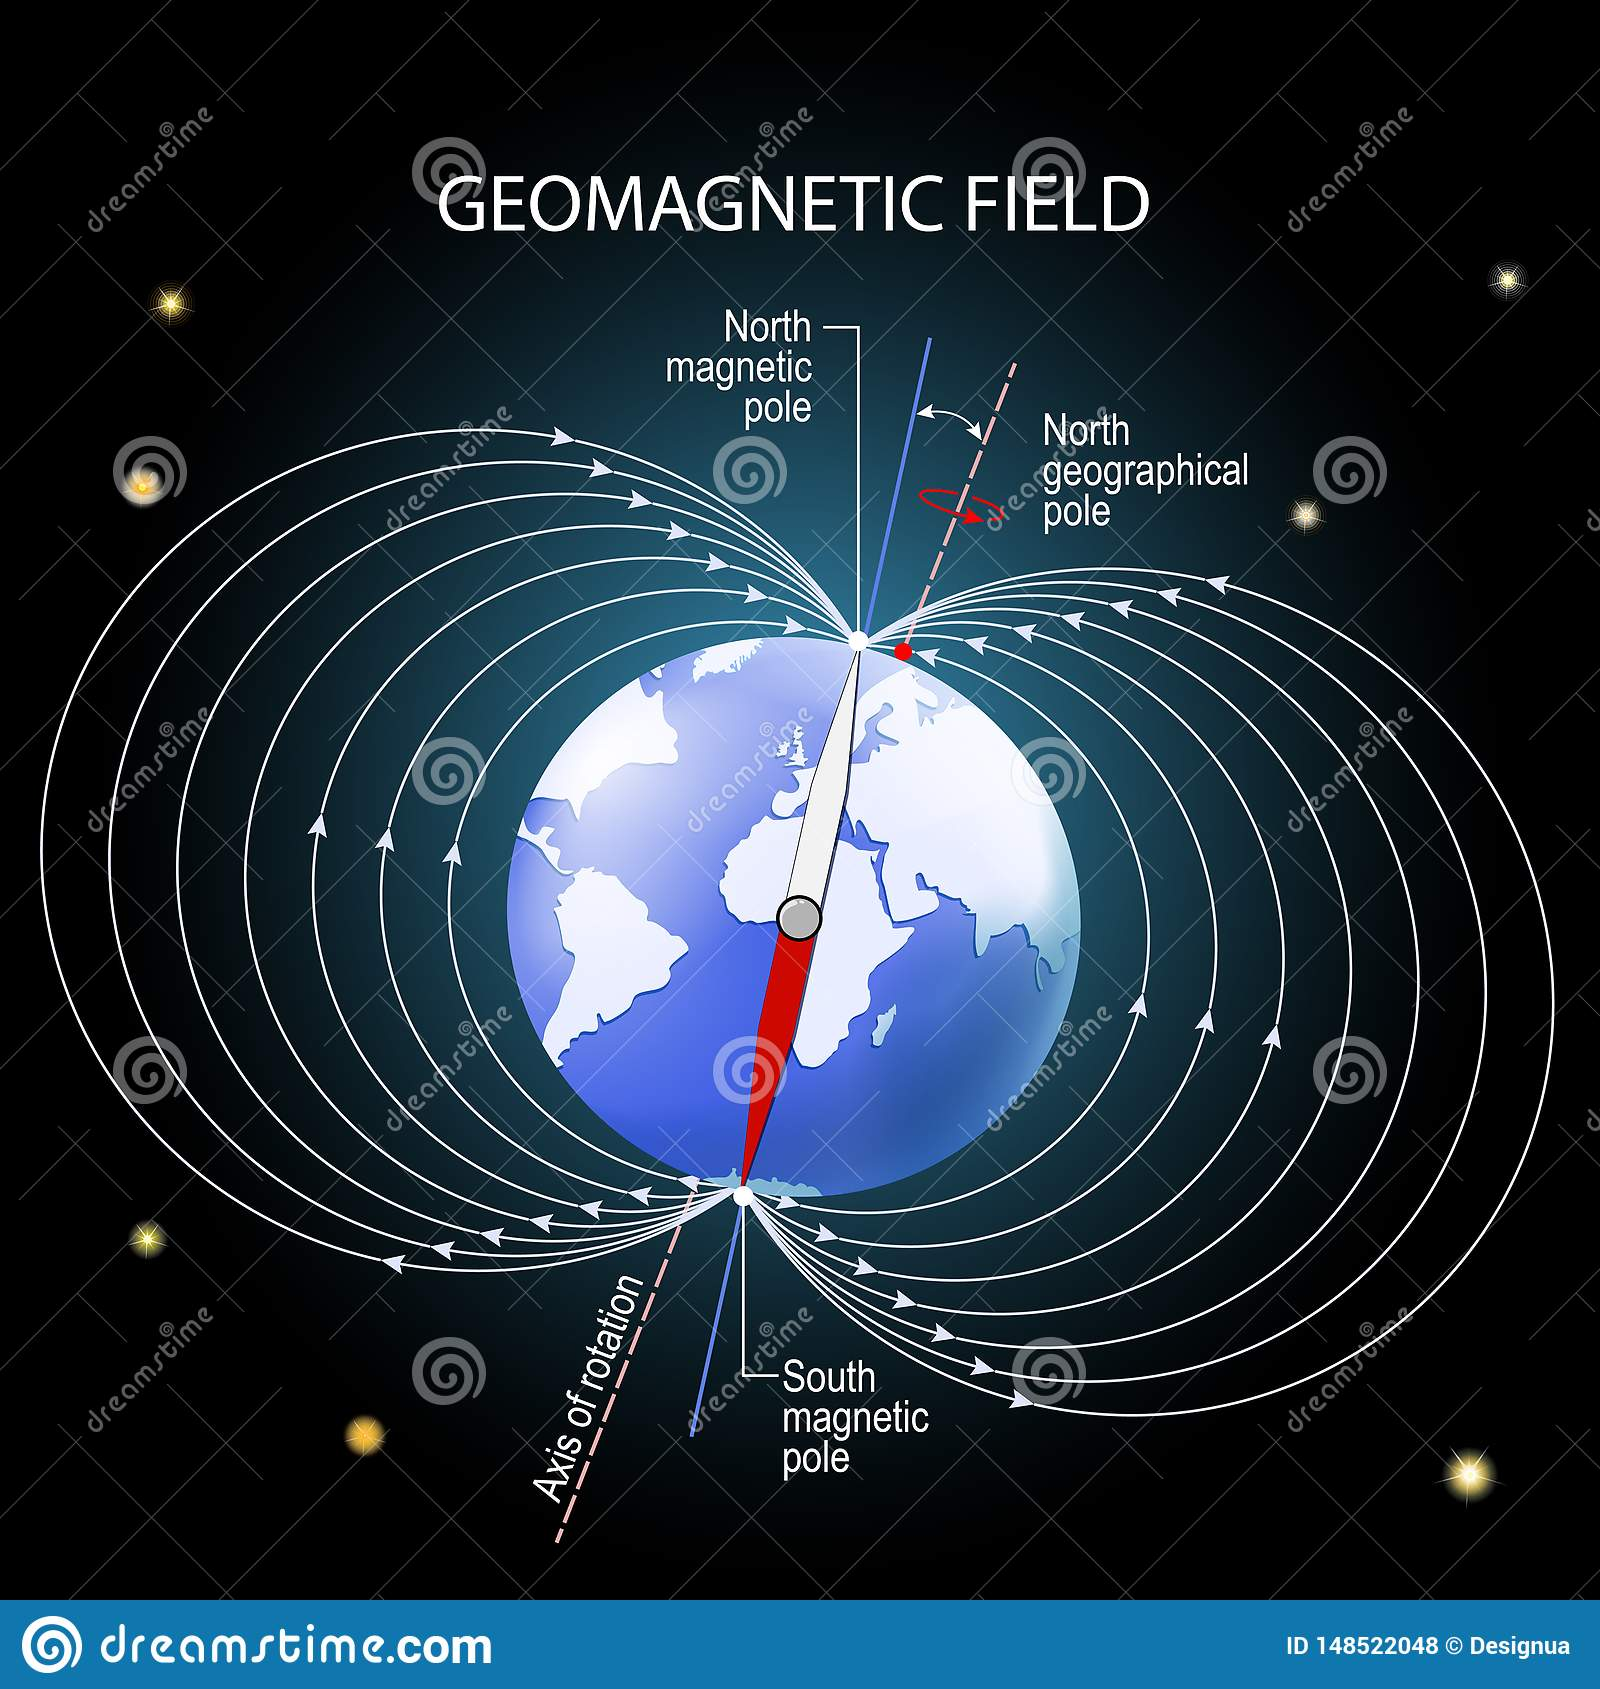 Geomagnetic or magnetic field of the Earth